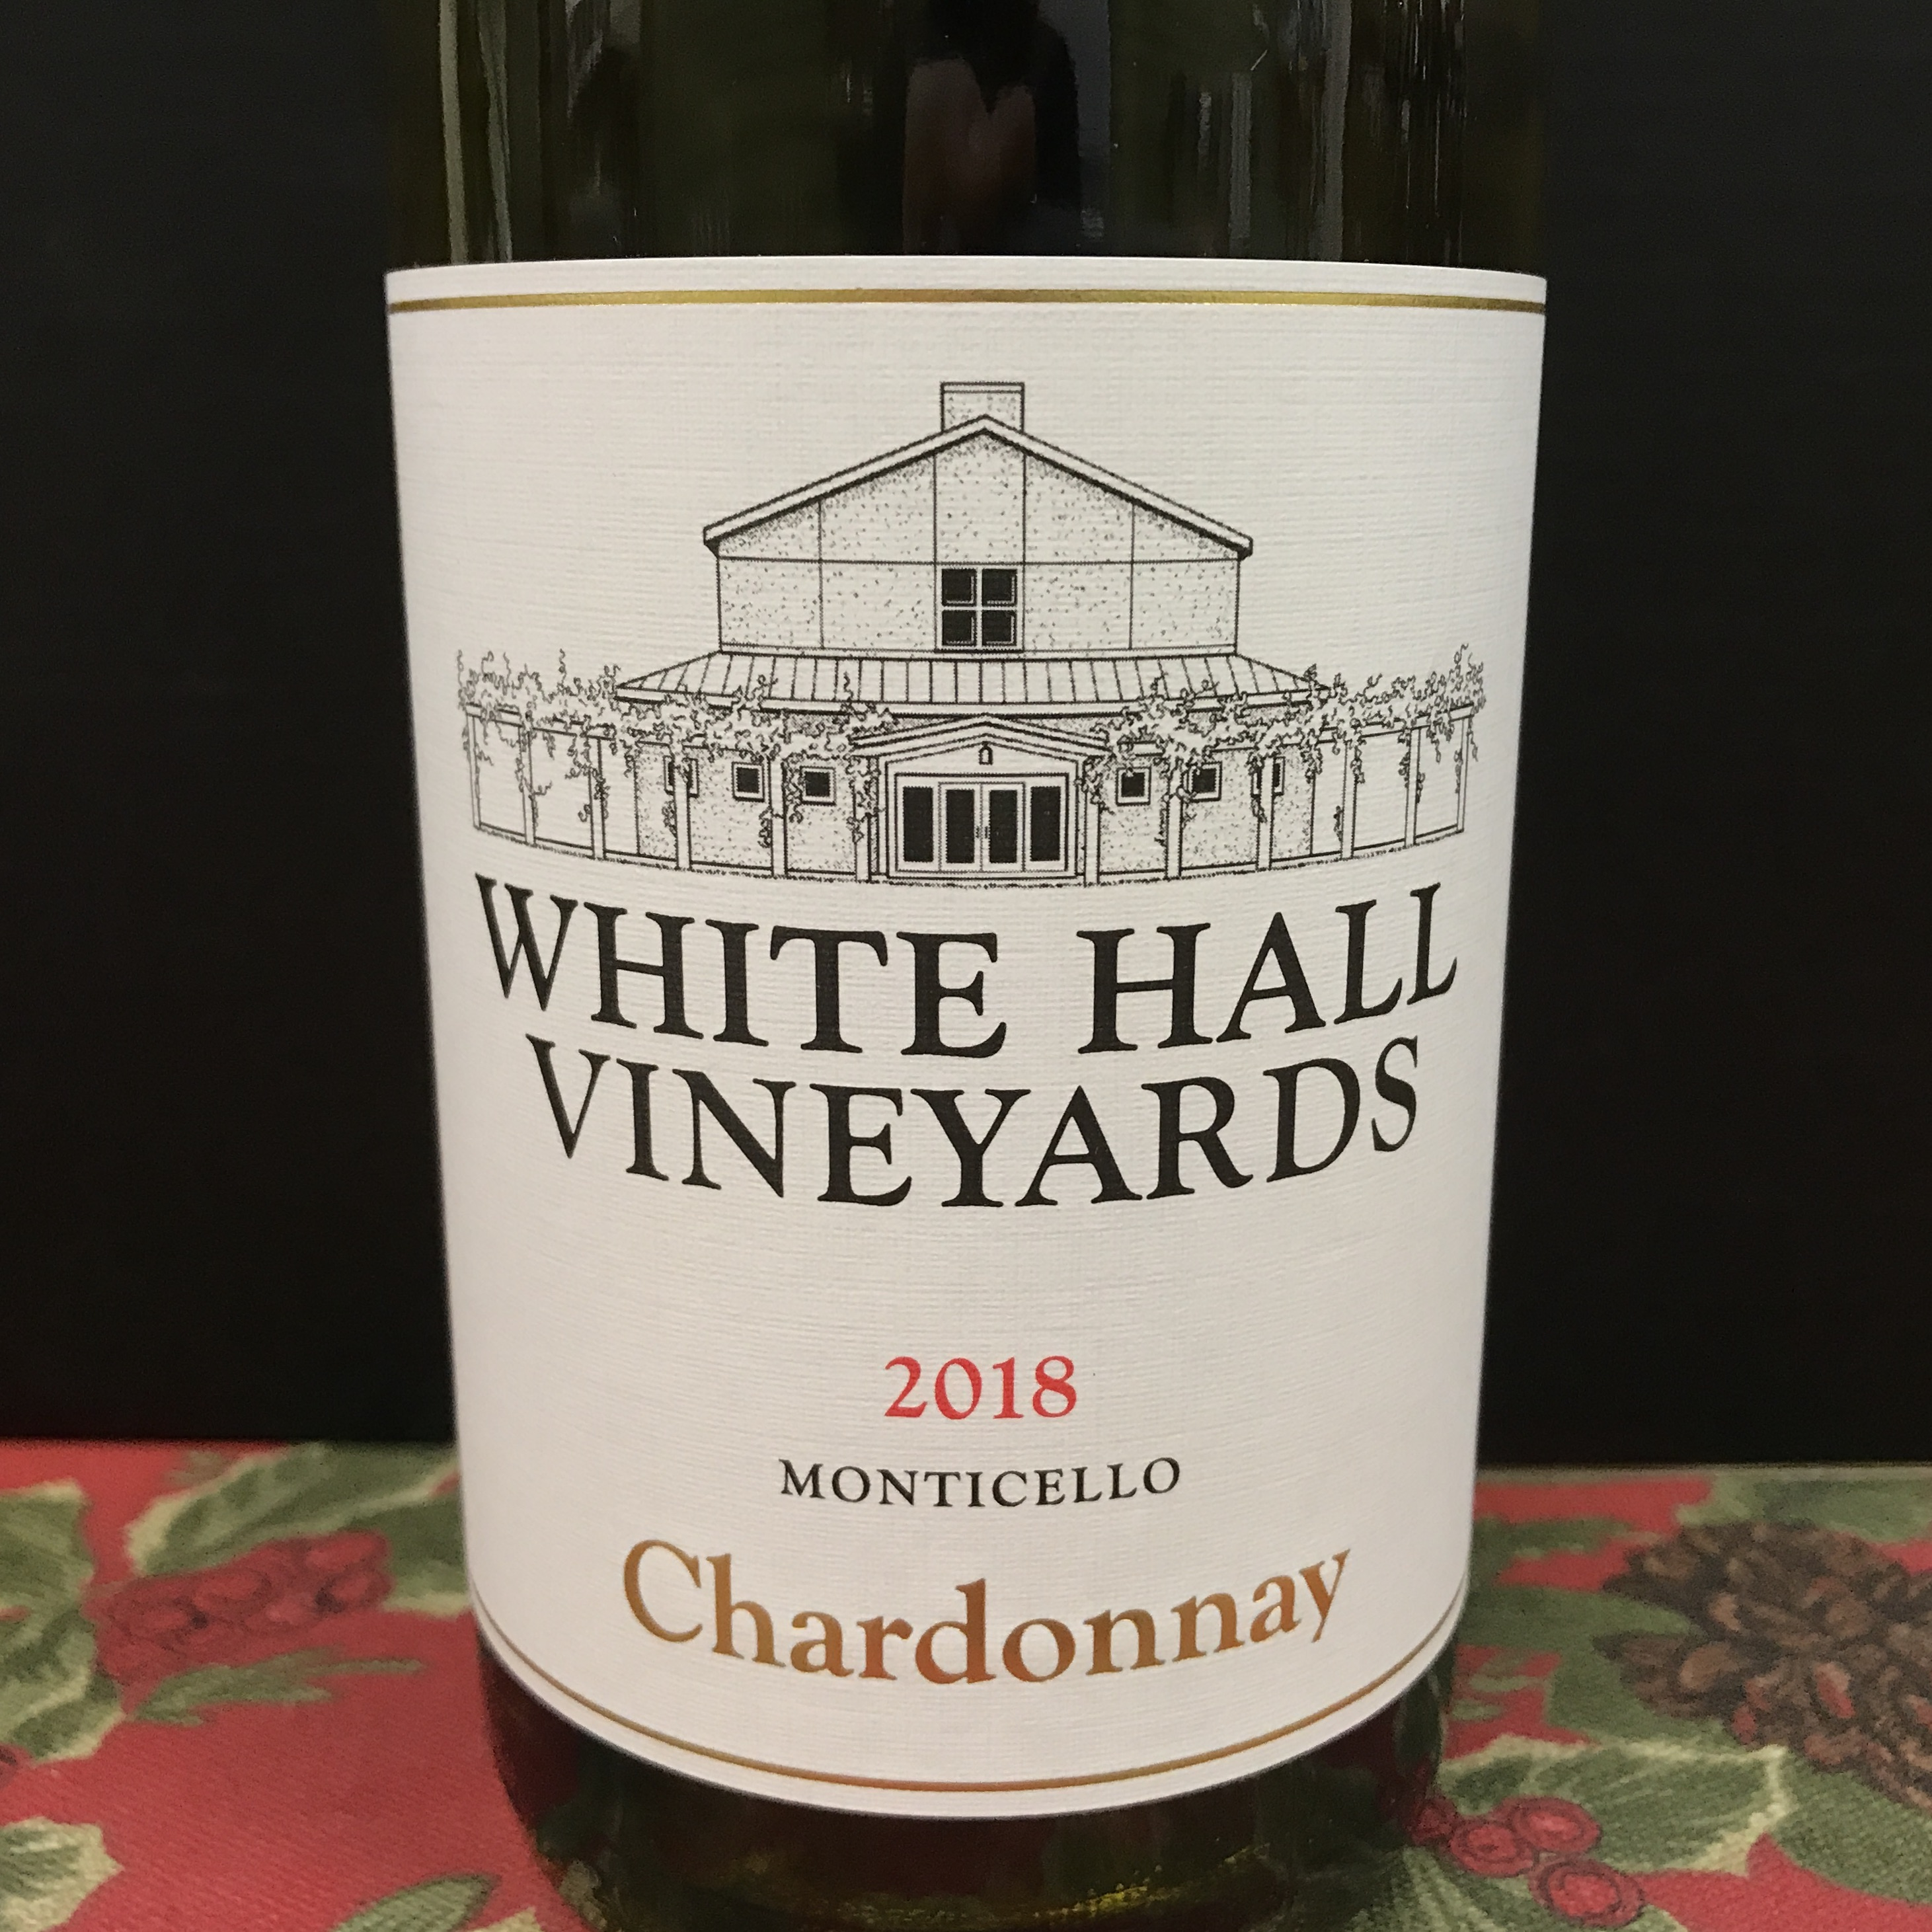 White Hall Vineyards Chardonnay Monticello 2018